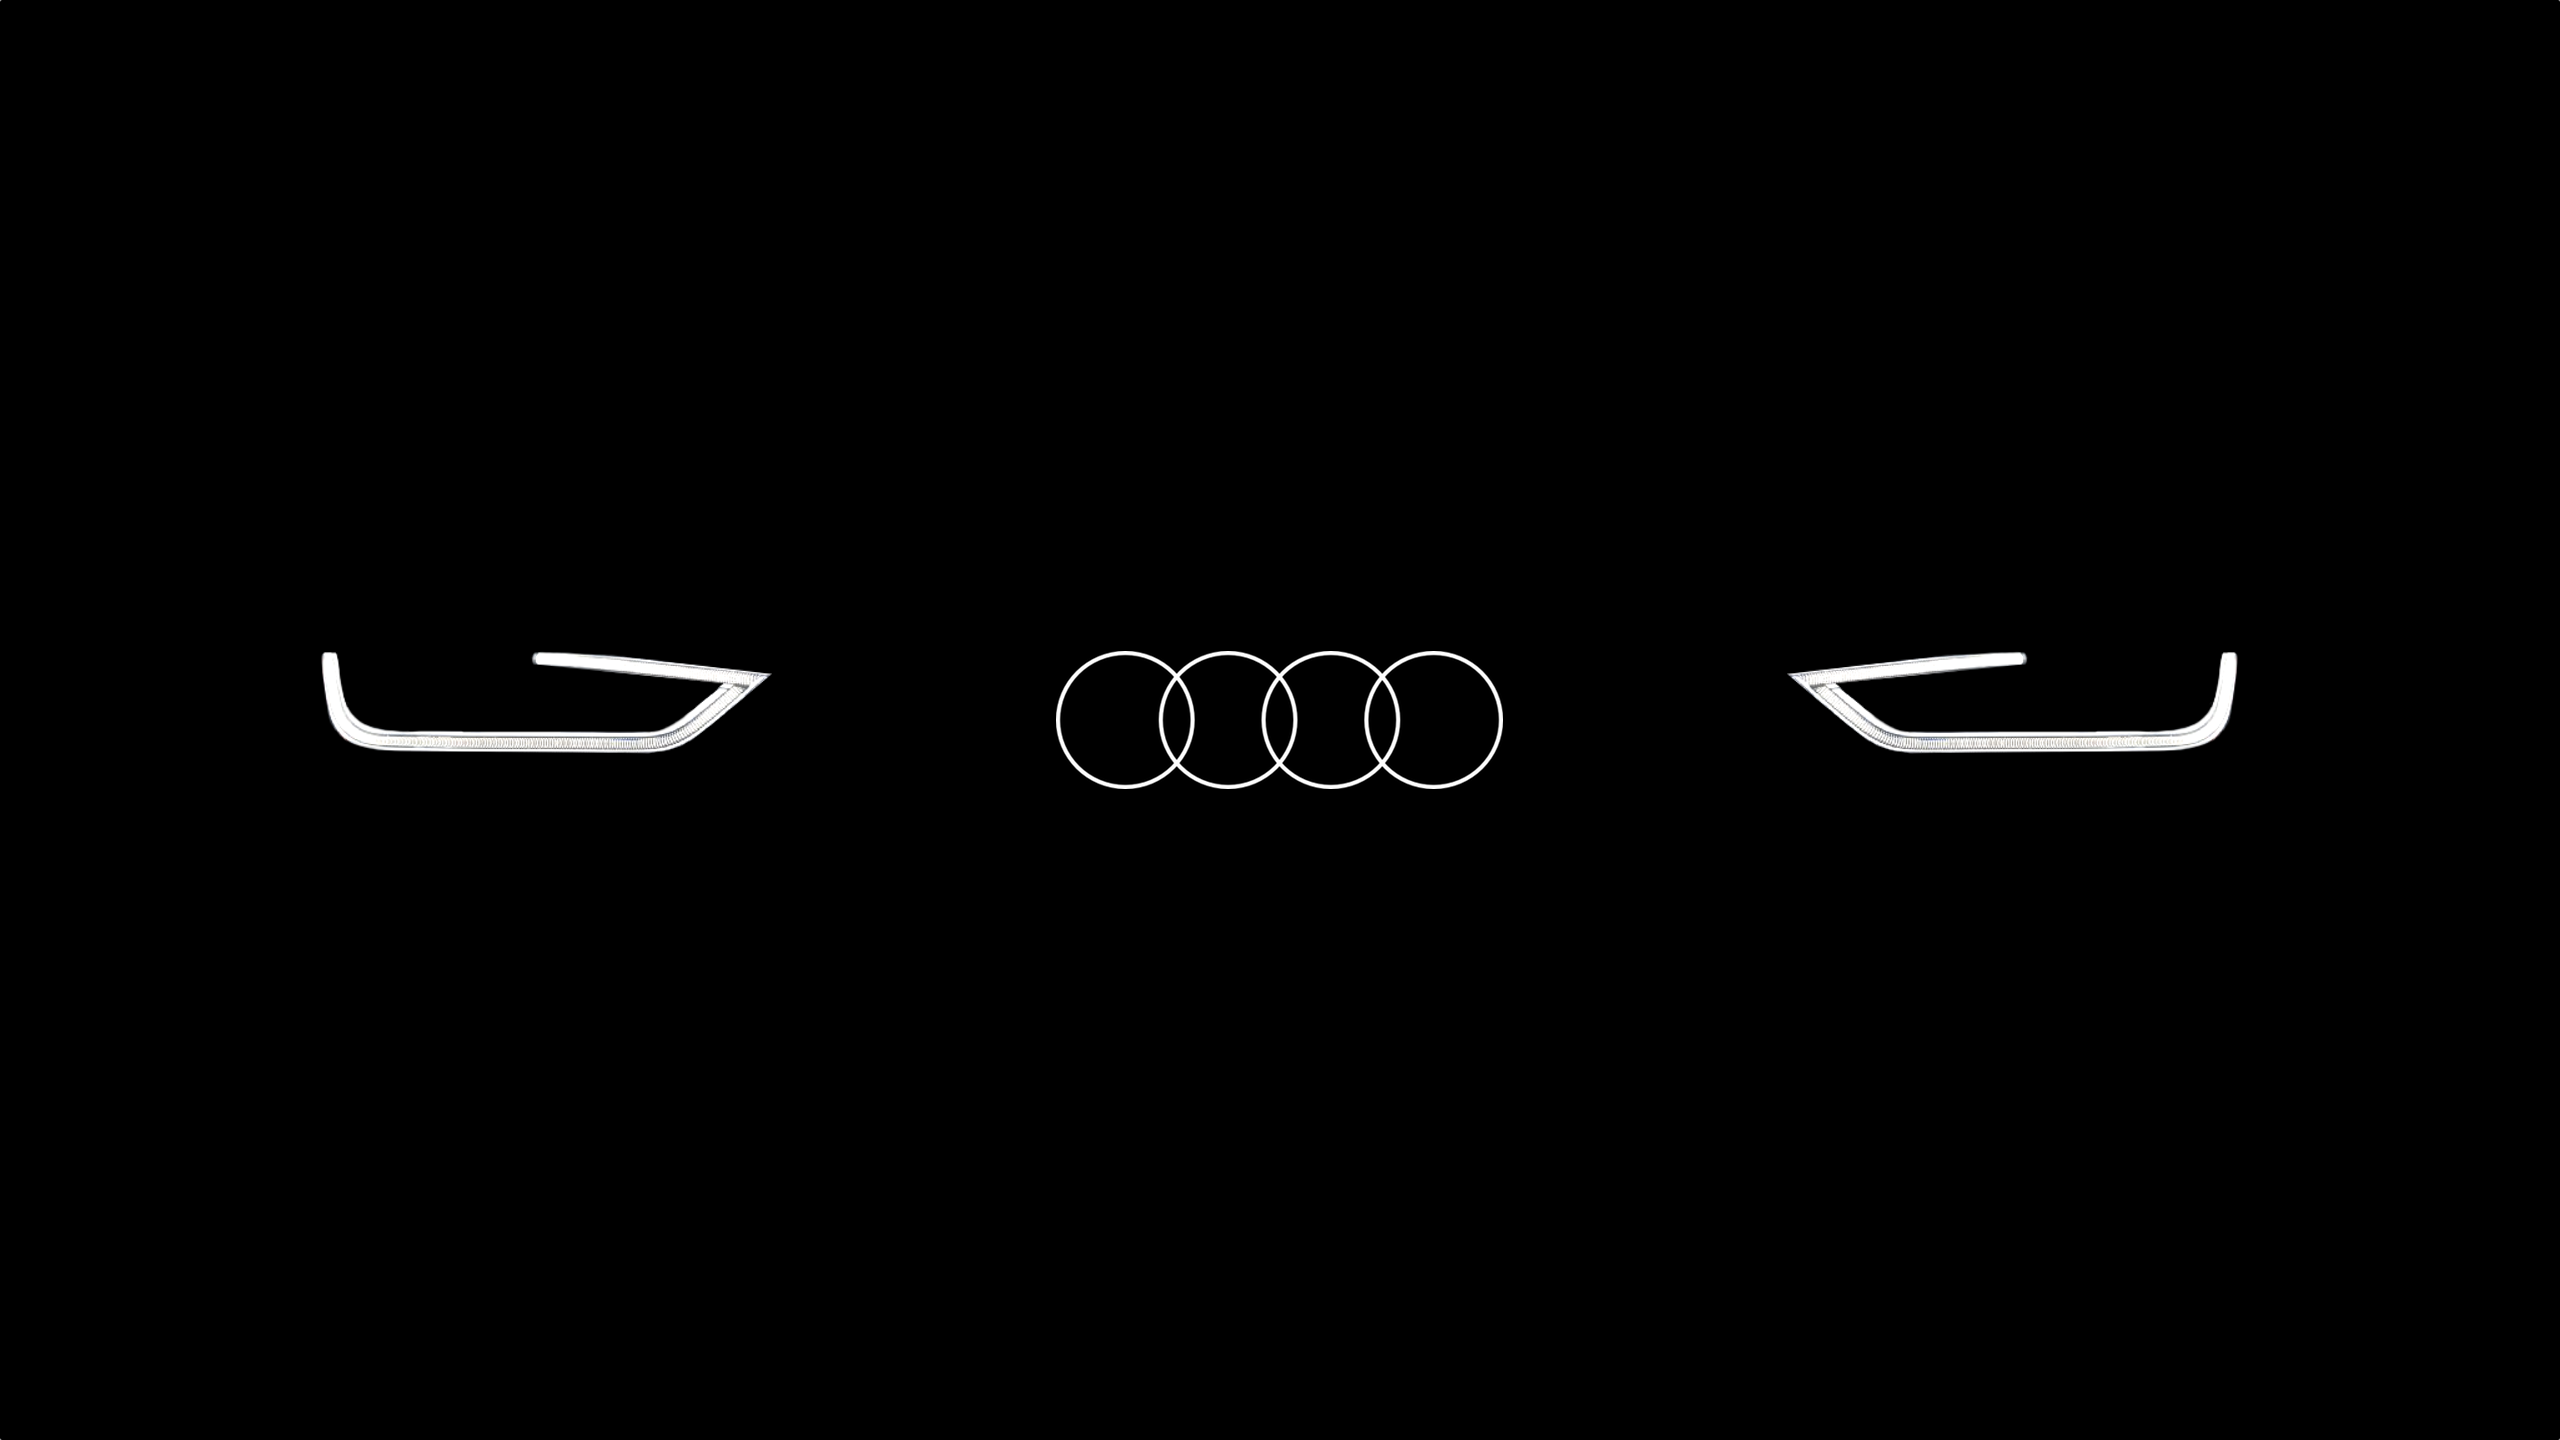 Logo Of Audi The Meaning History Of Audi The Four Ring Logo Youtube